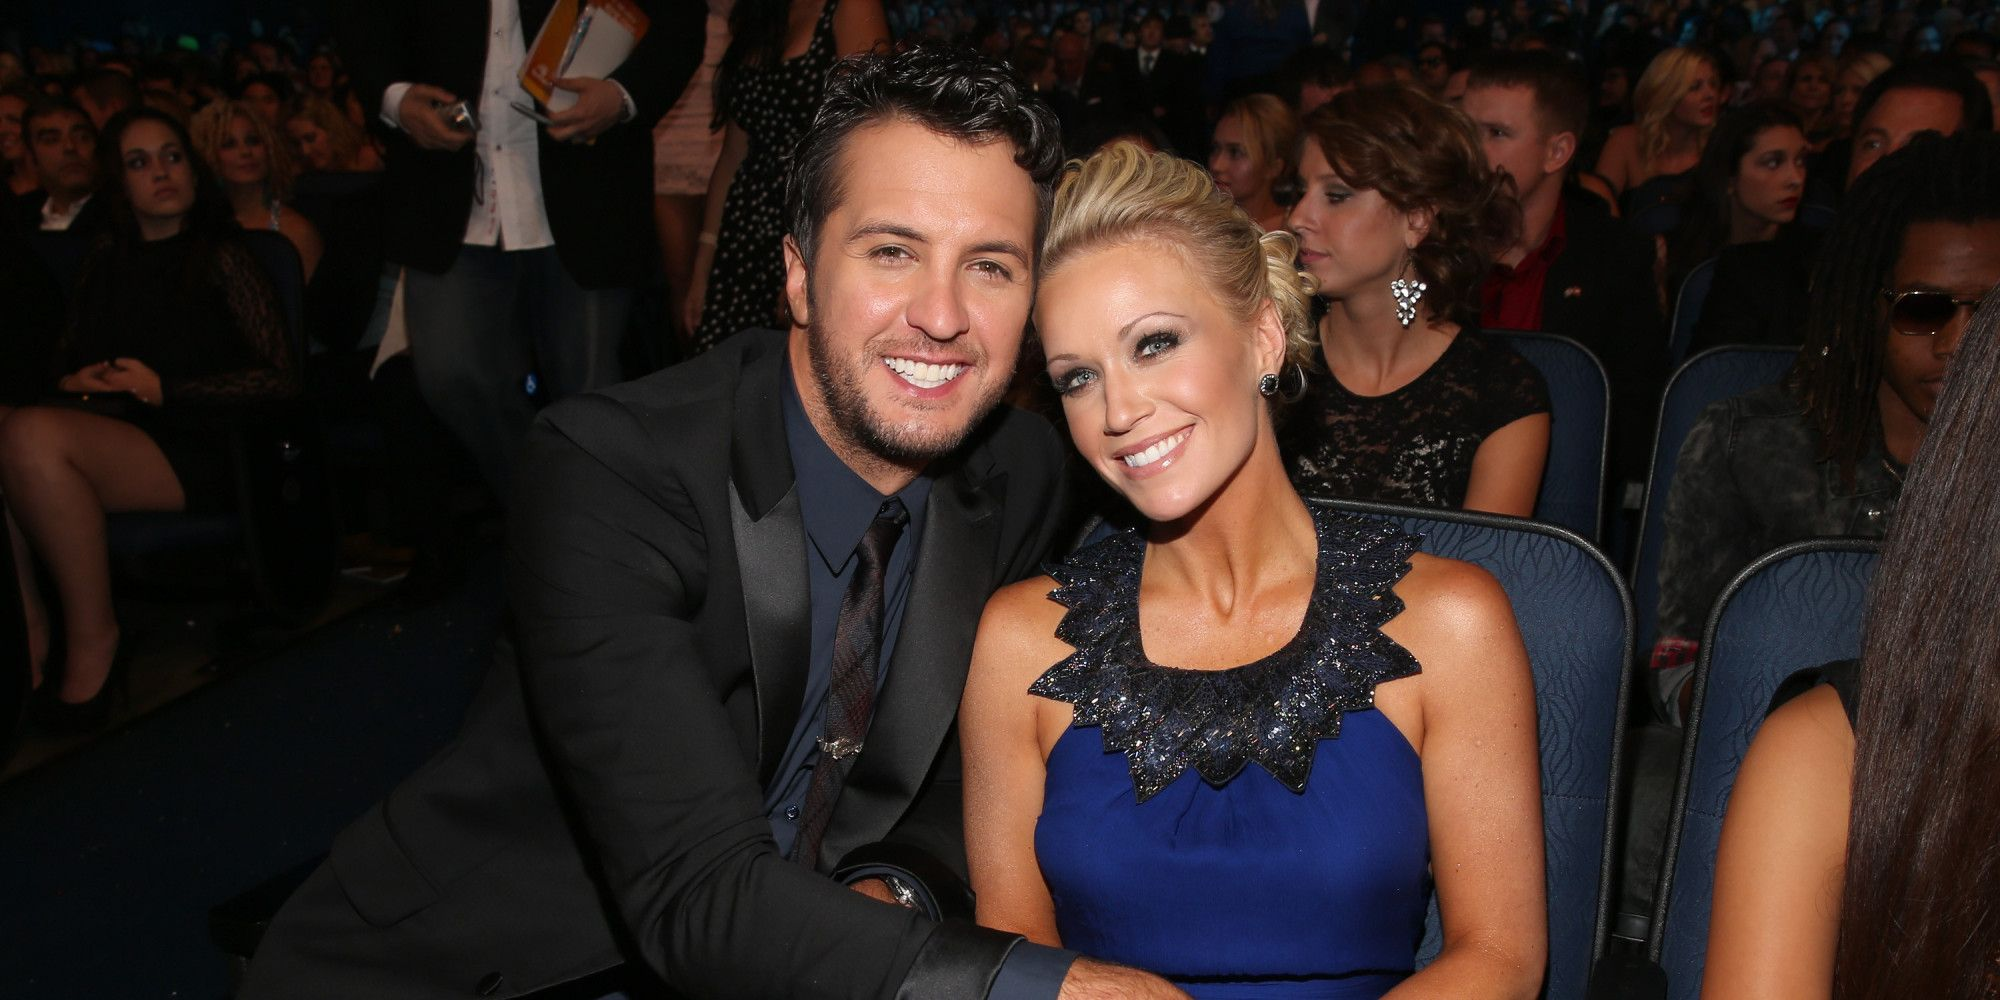 Luke bryan reminds us why hes the sweetest husband in country music luke bryan reminds us why hes the sweetest husband in country music kristyandbryce Image collections